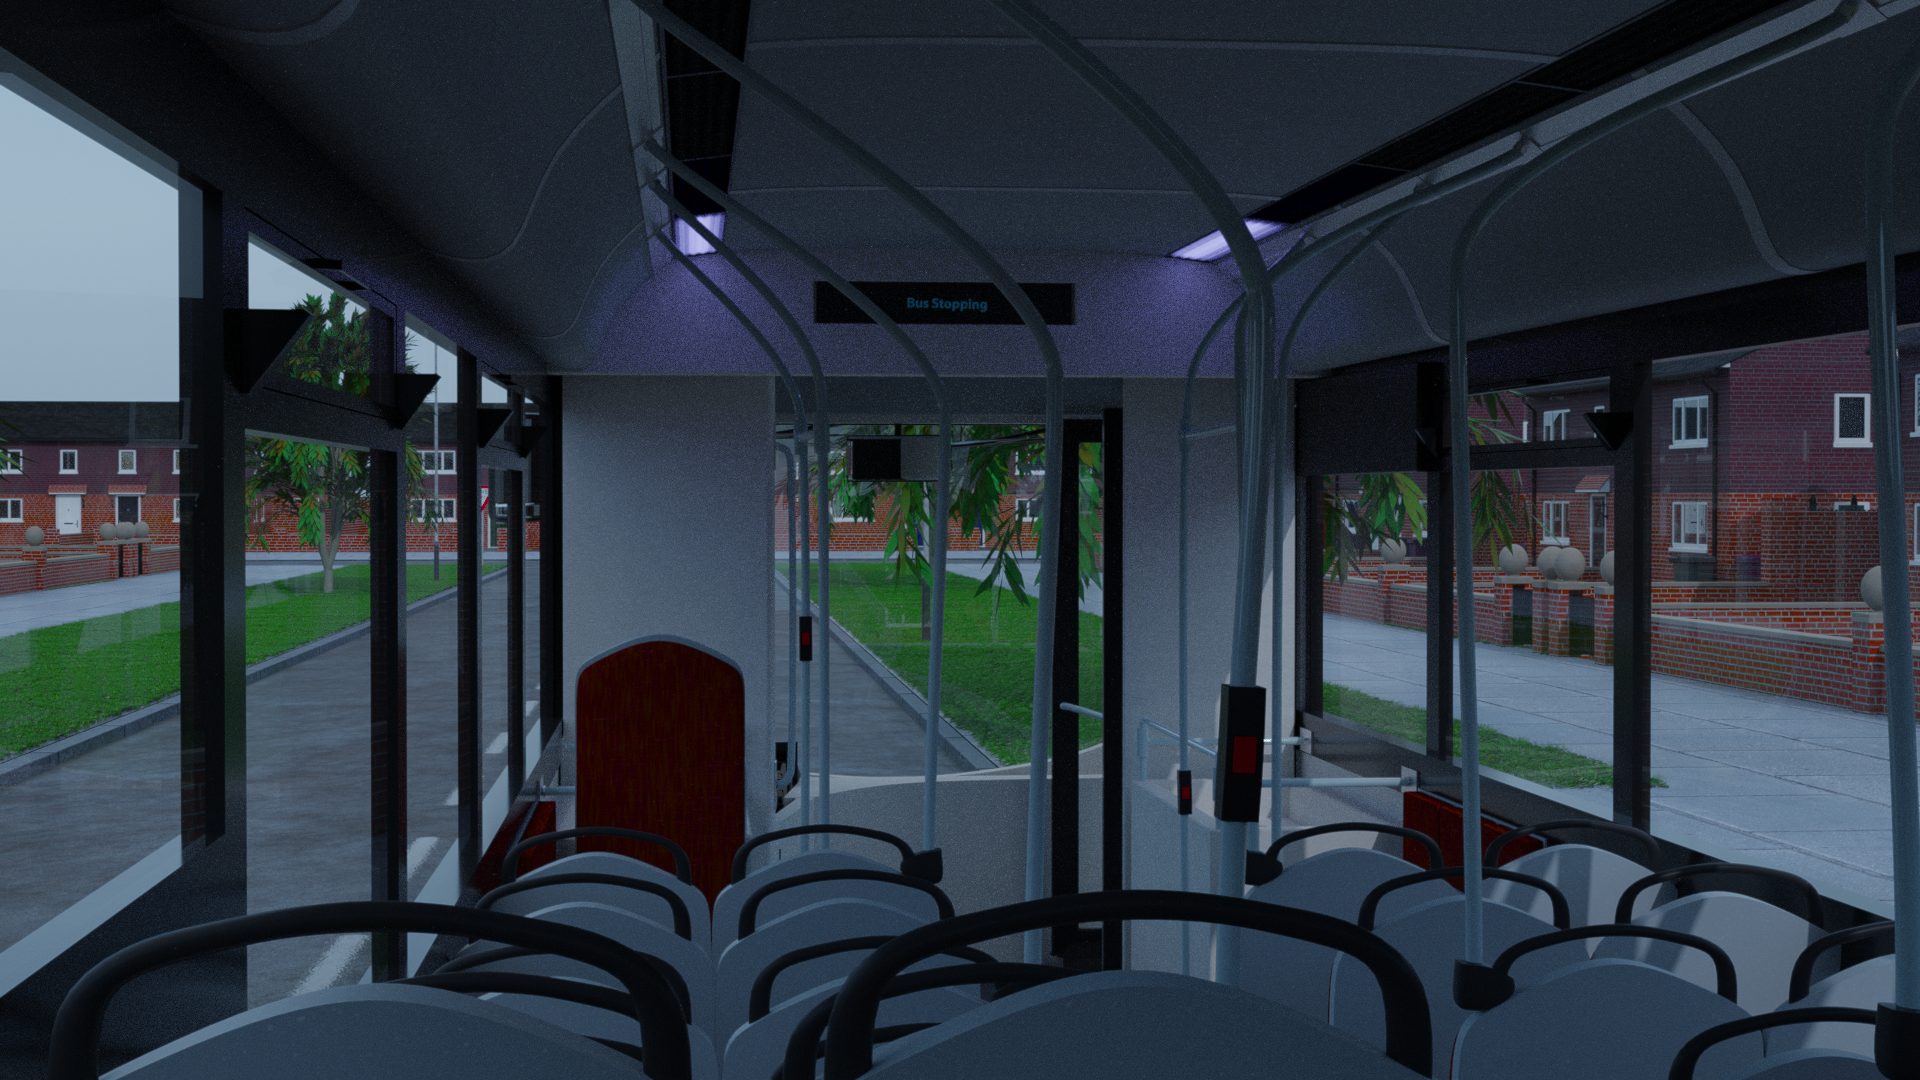 Transit Bus | Two Service Doors preview image 2